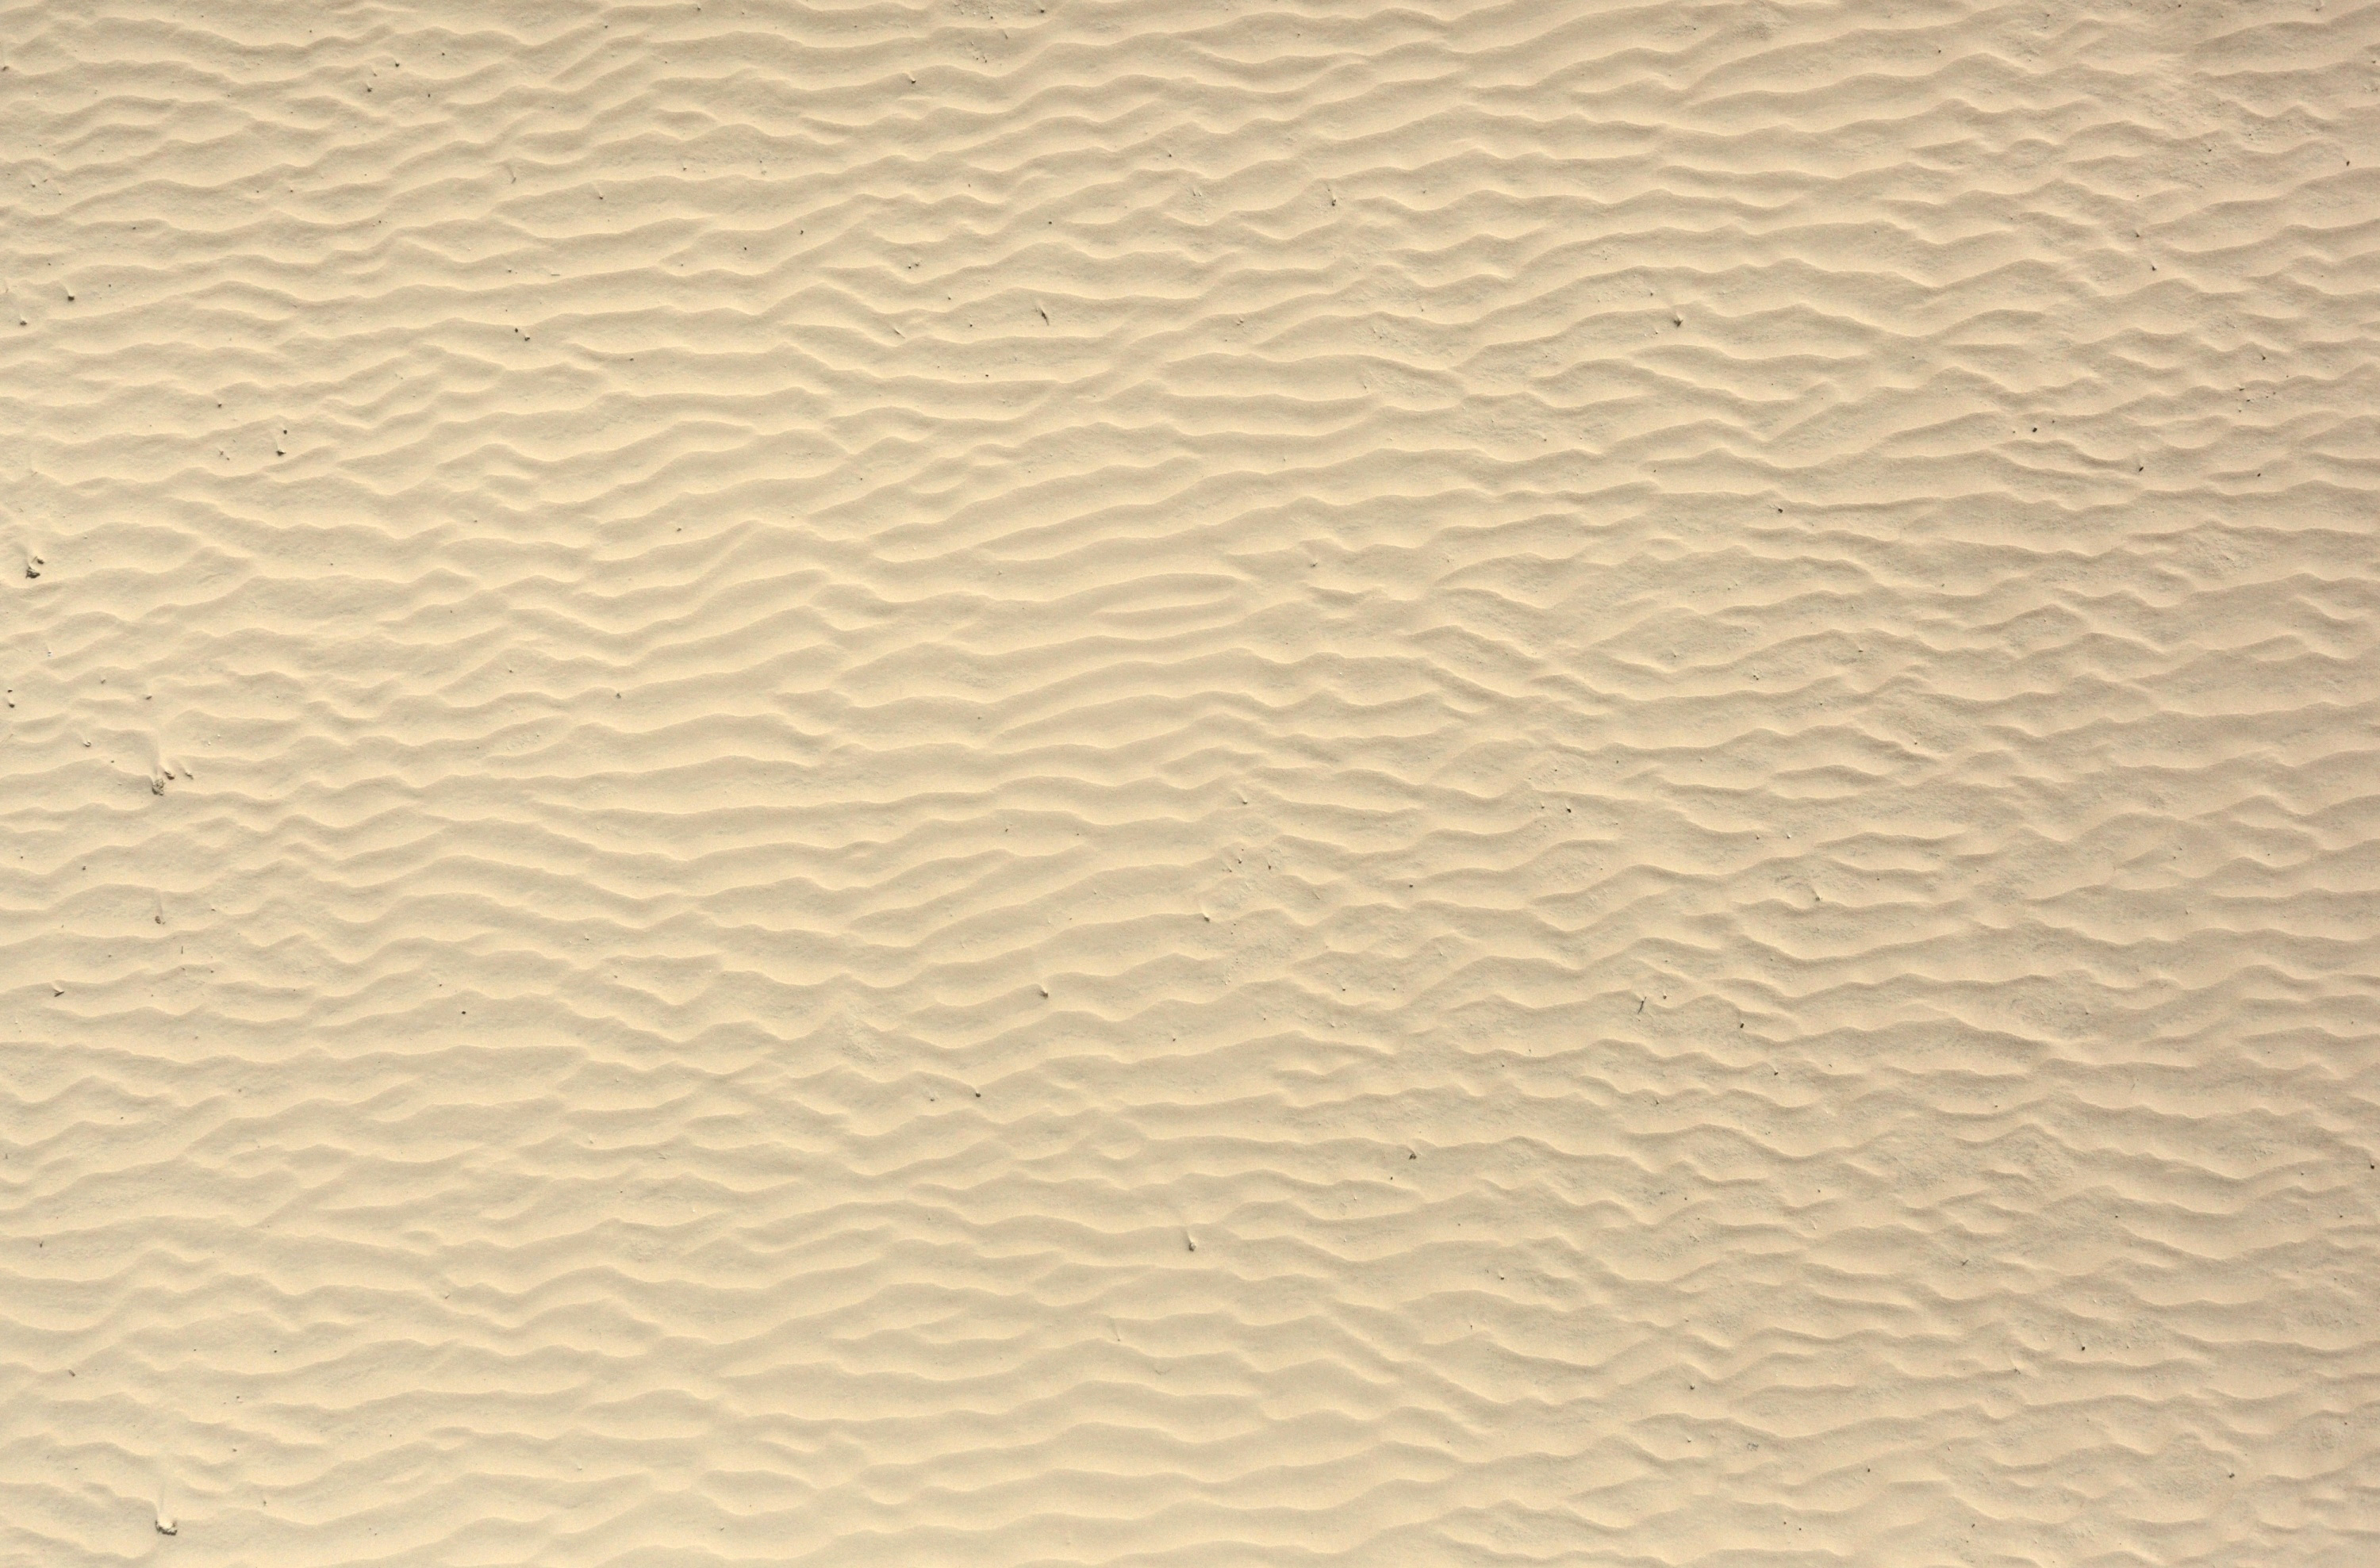 Beach Sand Background.